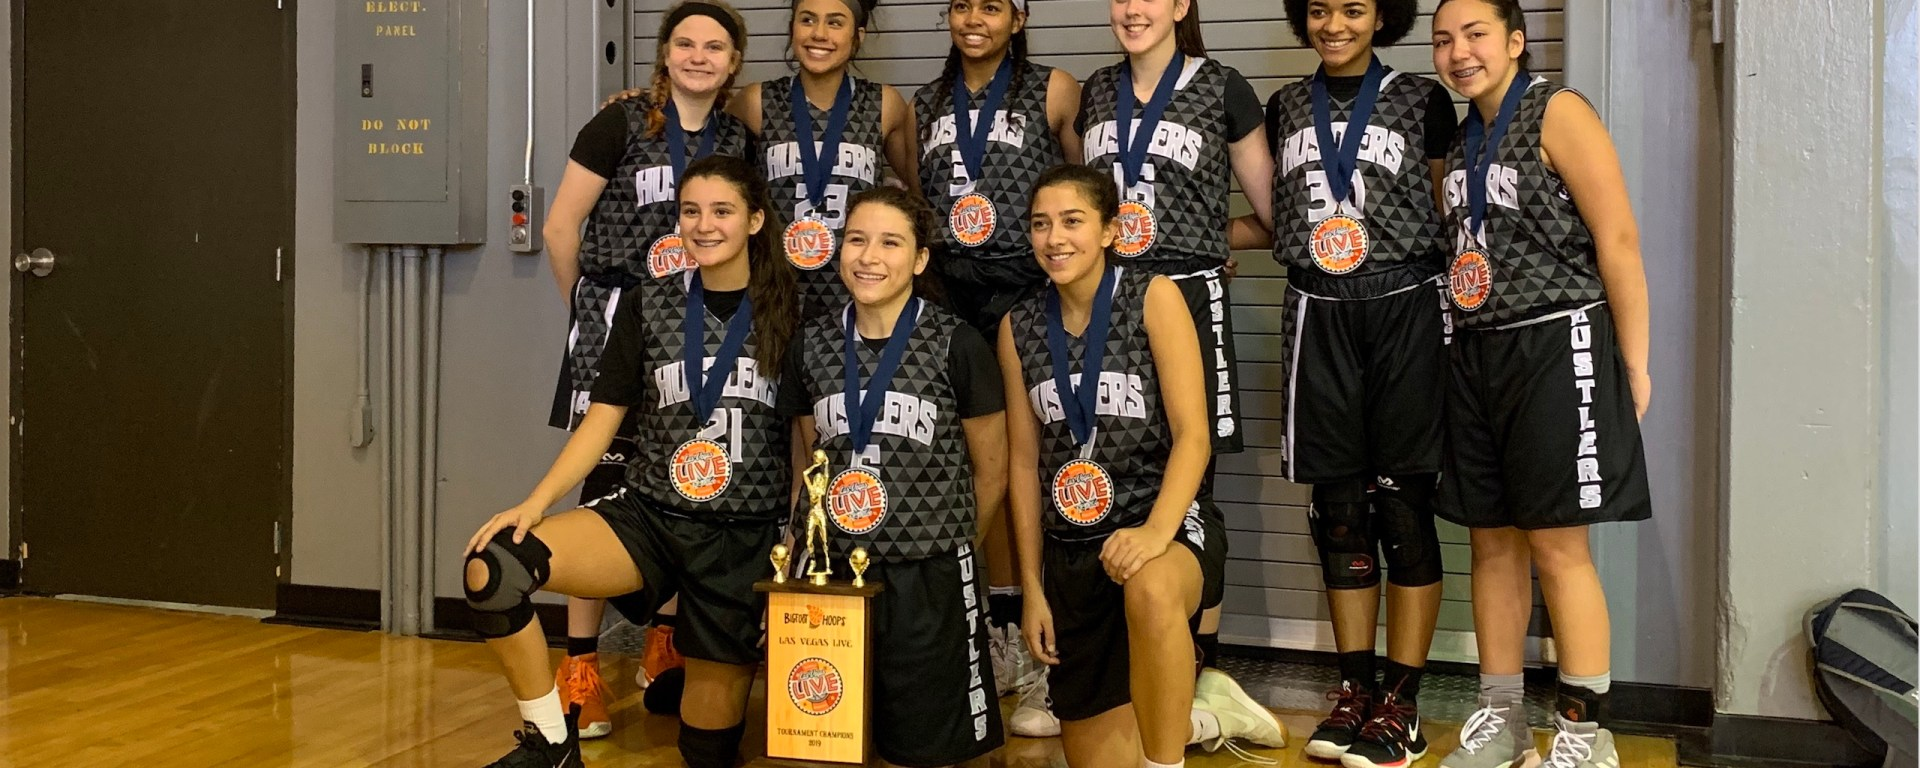 Photo of rising junior and her basketball team winning their division championship